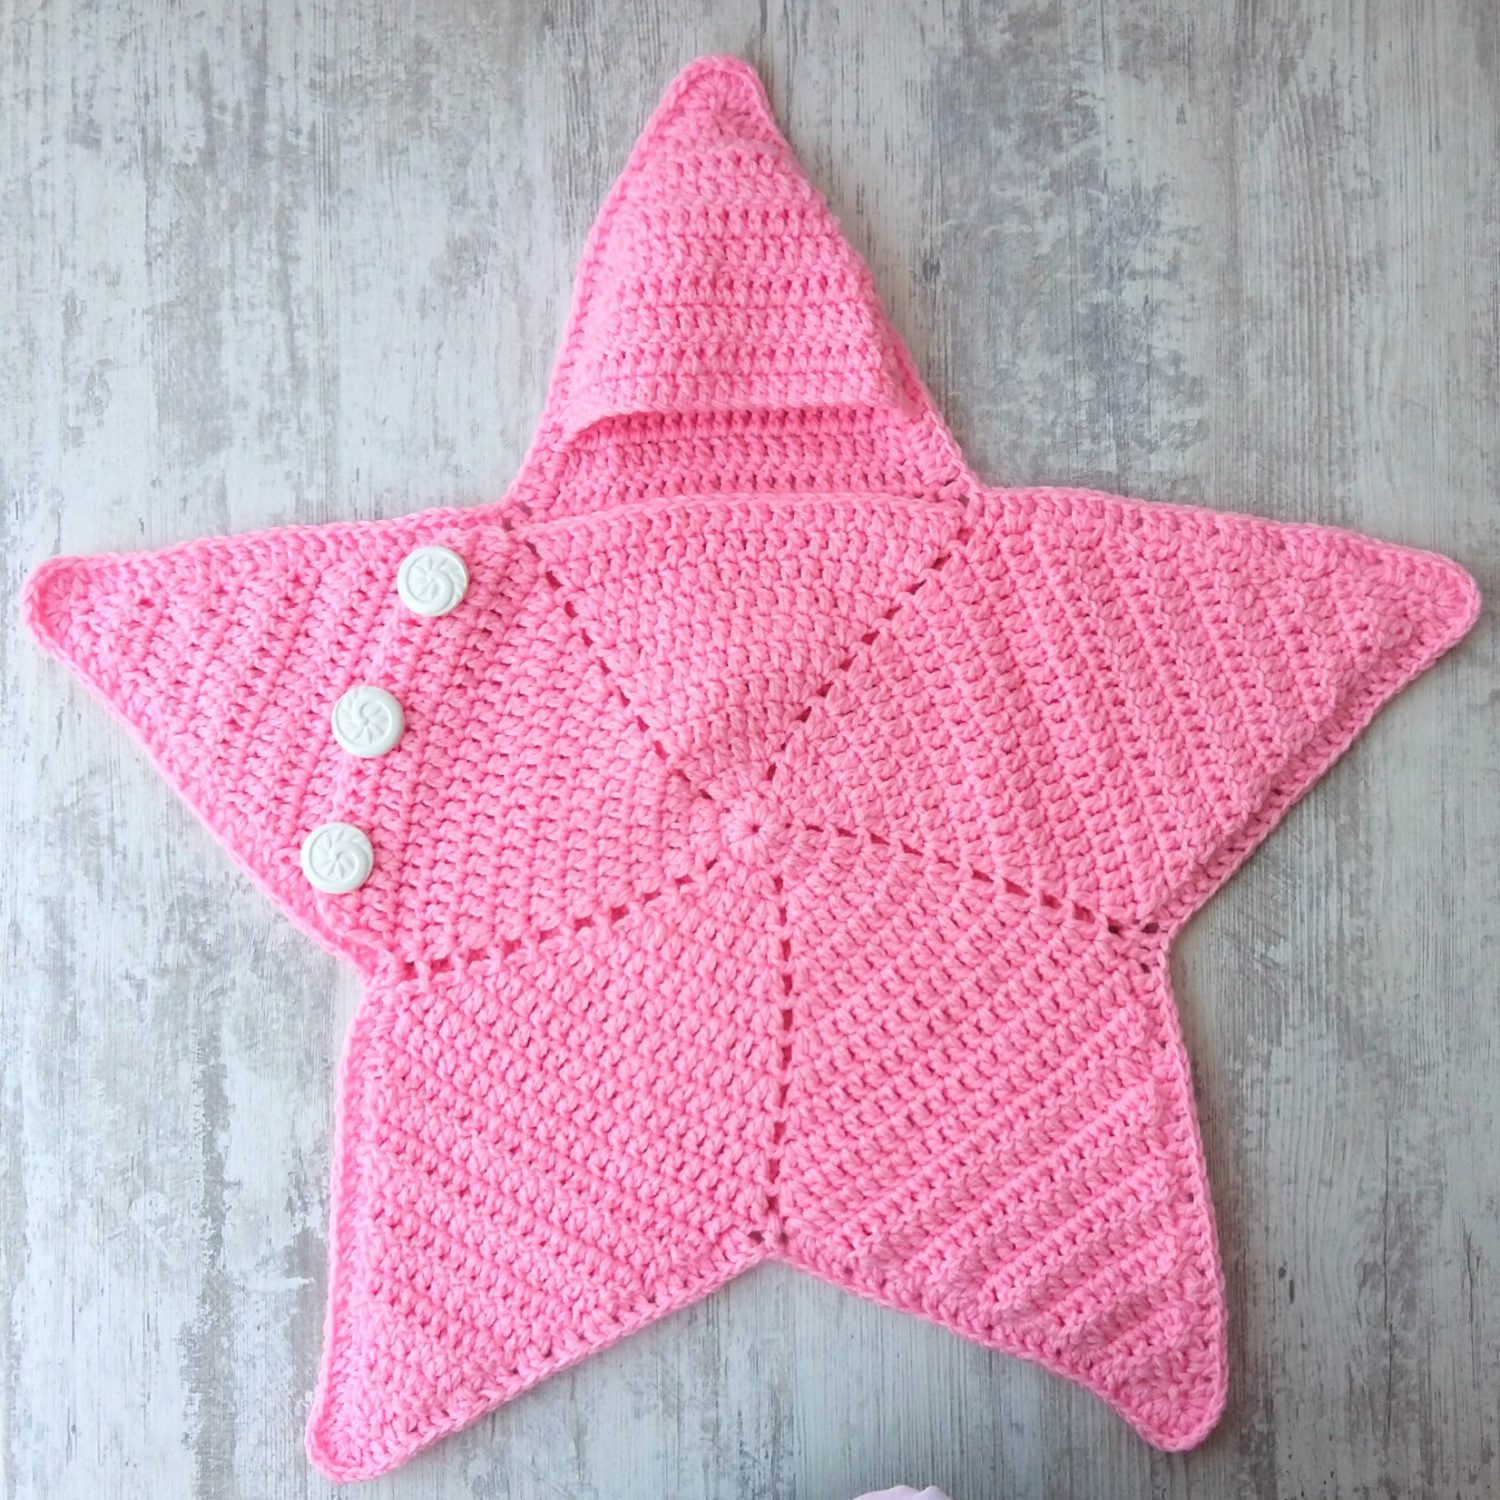 Crochet Baby Star Blanket Wrap Cozy Free Pattern Myaccessorybox